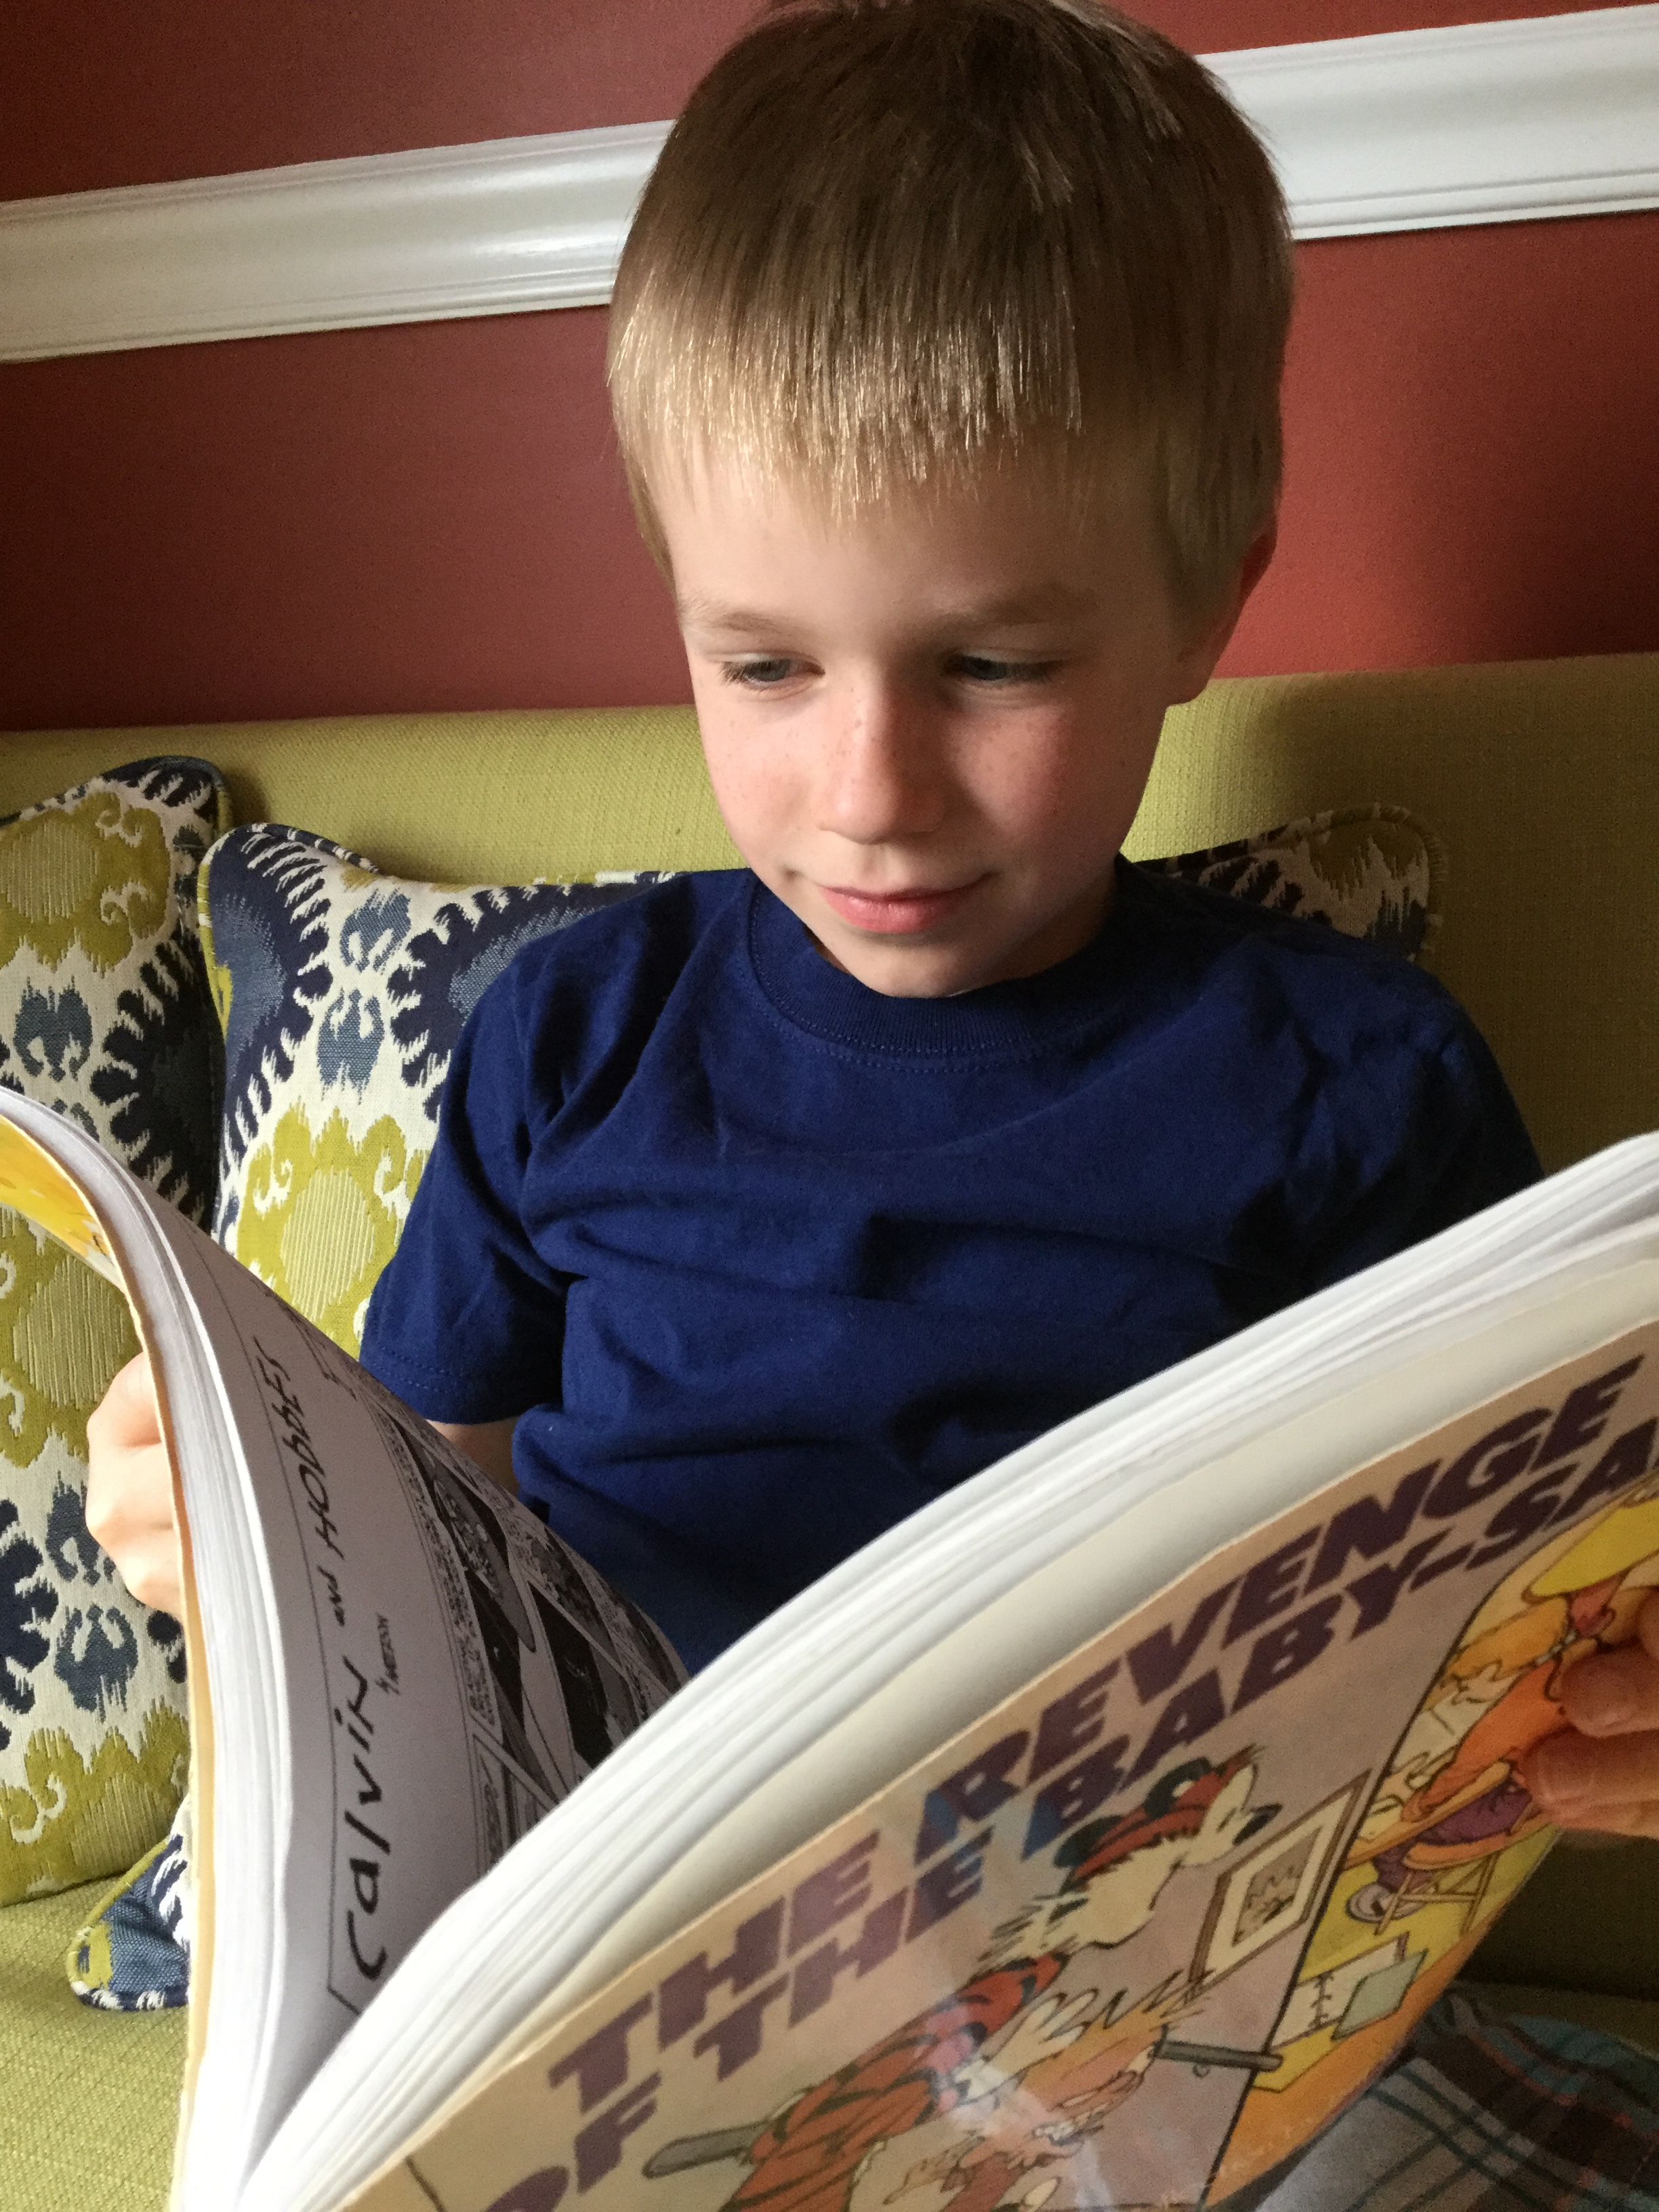 My 7-year-old with his new favorite book series.